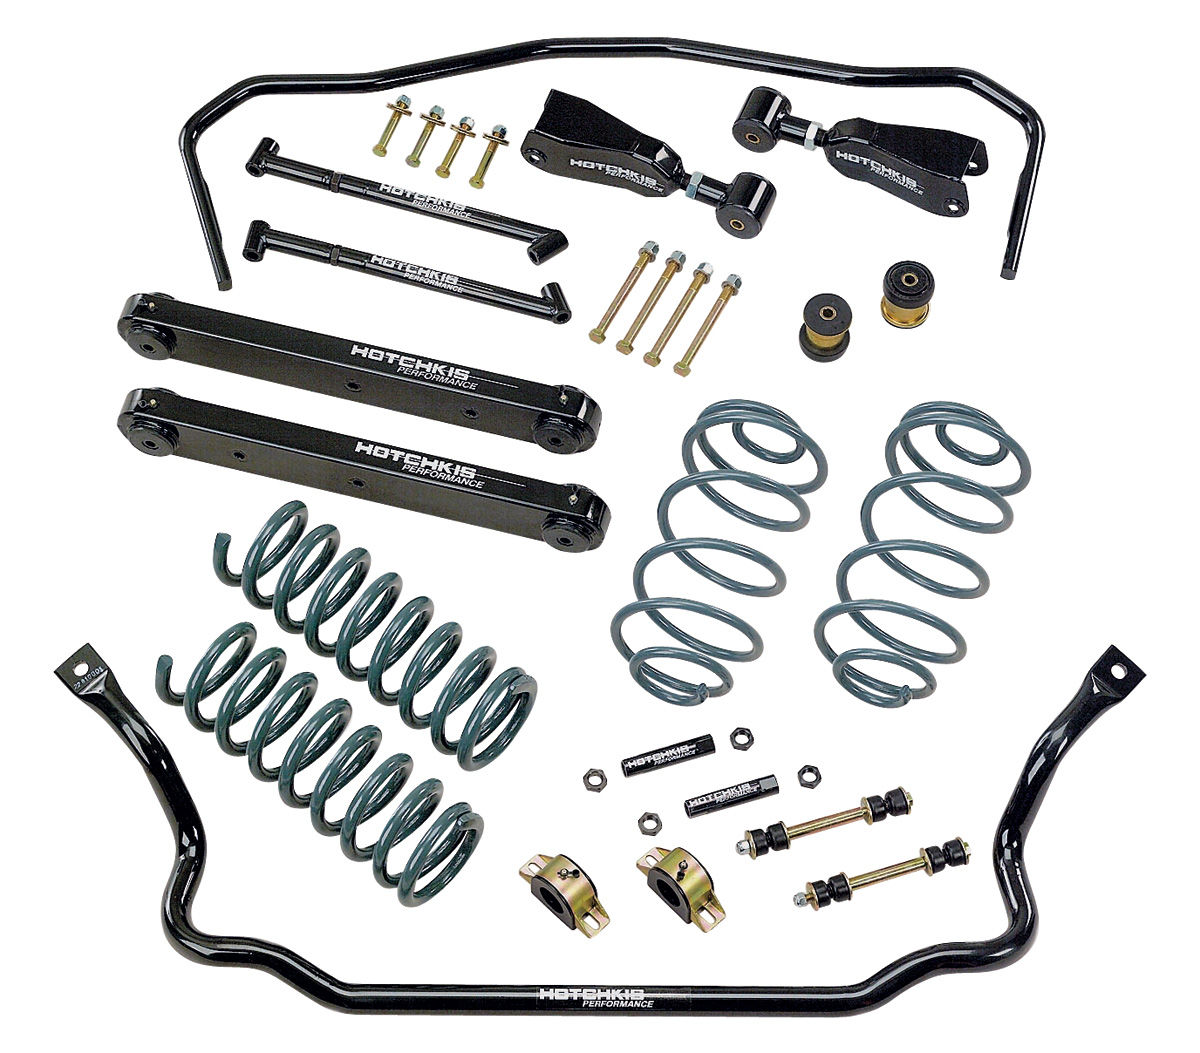 "Photo of Total Vehicle Systems Handling Package 1-1/4"" adjustable"